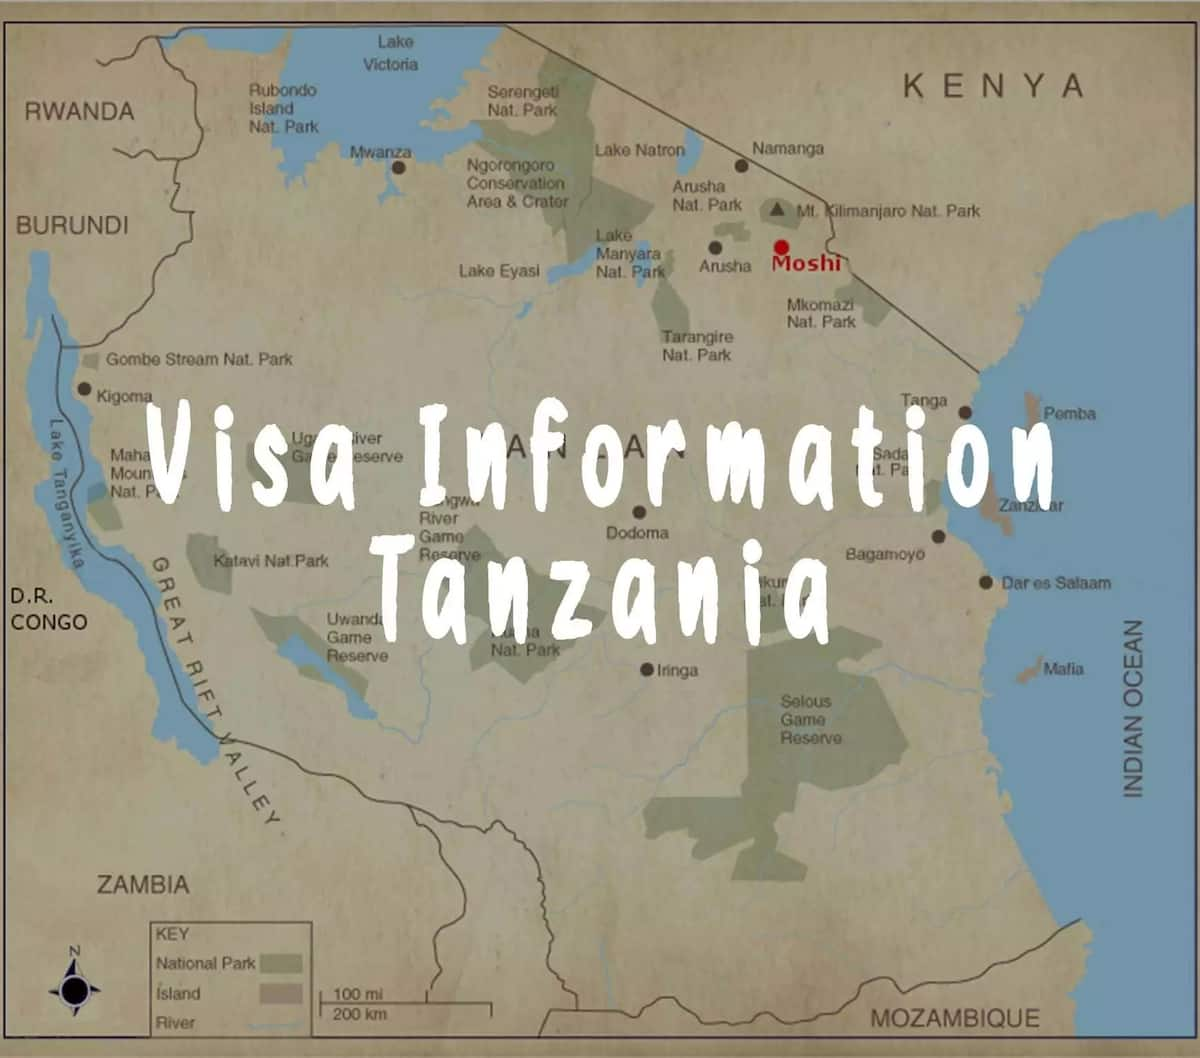 How to get Tanzania visa from Kenya